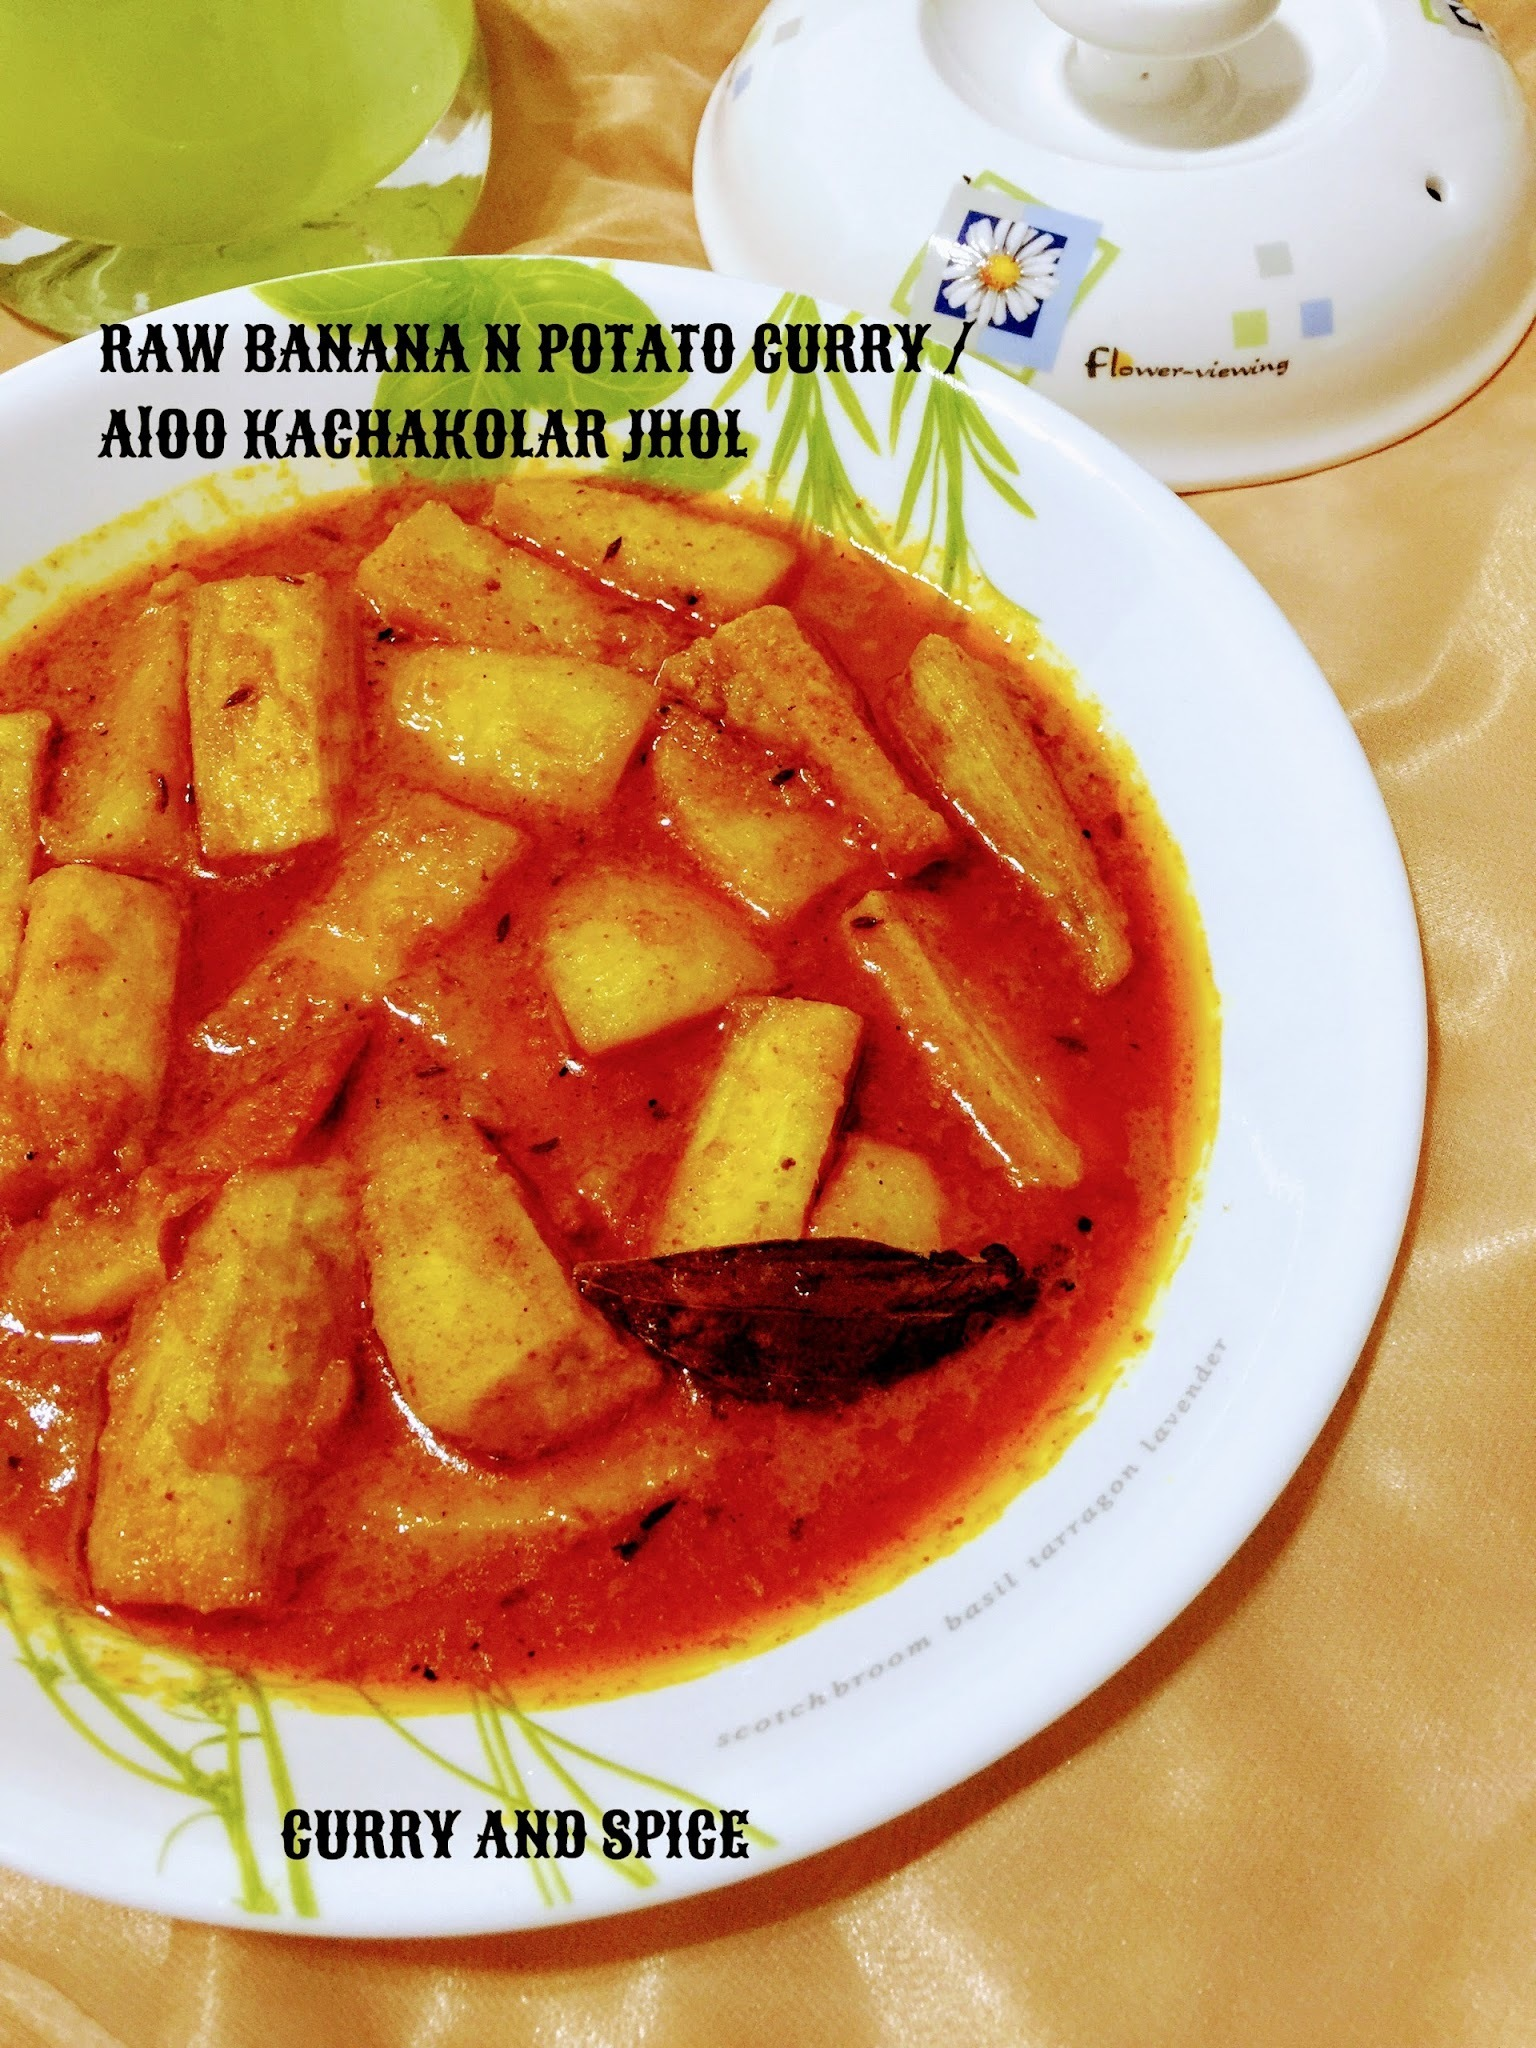 RAW BANANA N POTATO CURRY / ALOO KANCHAKOLAR JHOL